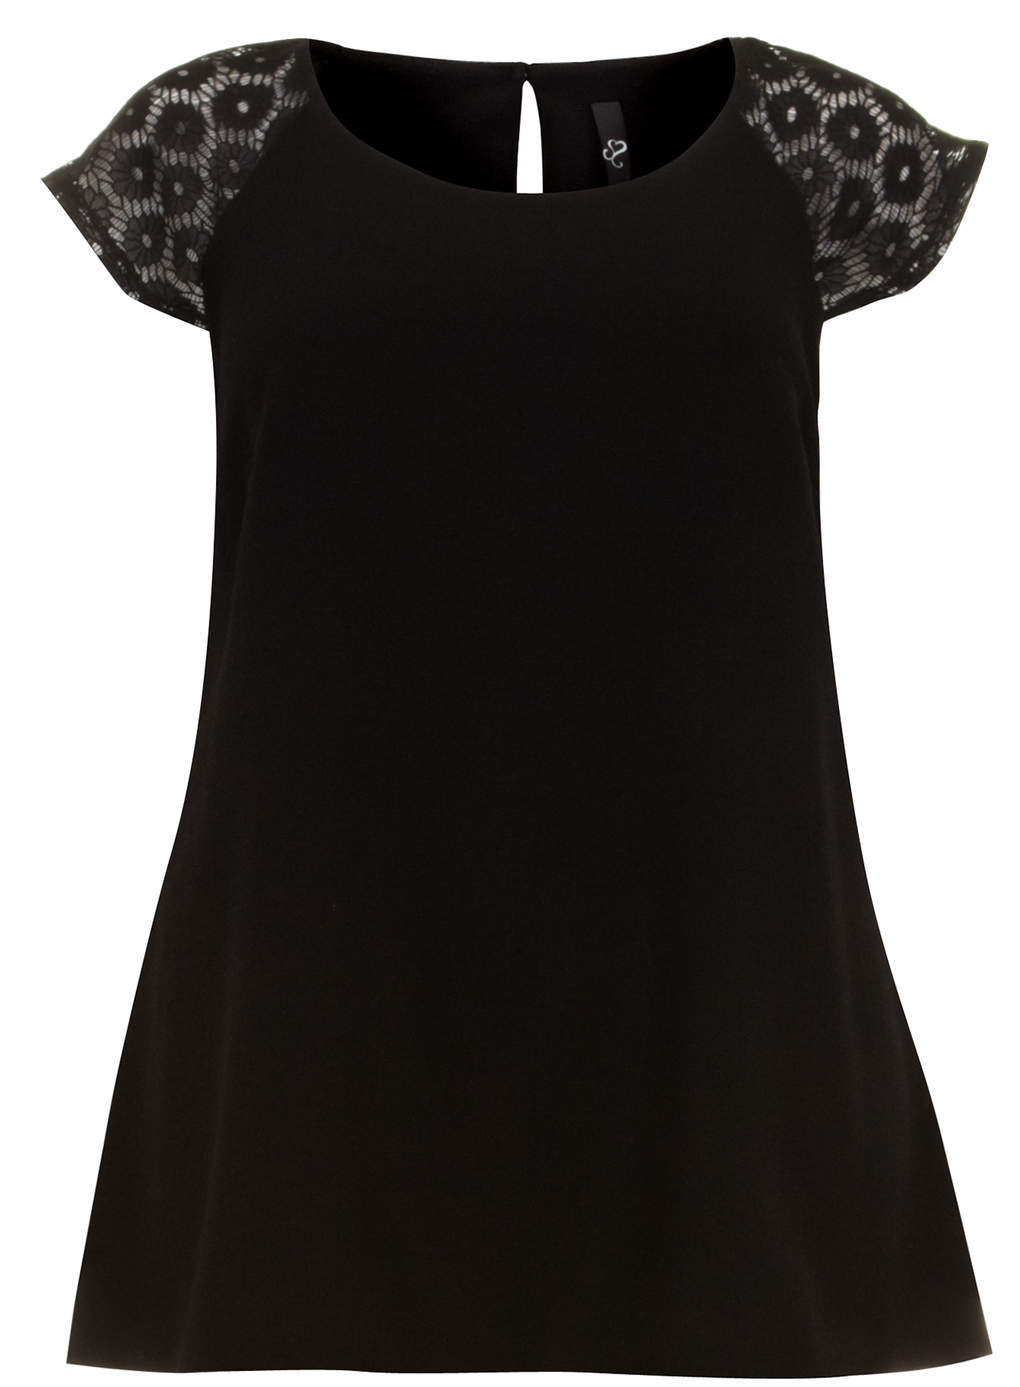 Black Lace Sleeve Swing Top - neckline: round neck; pattern: plain; shoulder detail: contrast pattern/fabric at shoulder; predominant colour: black; occasions: casual, creative work; length: standard; style: top; fibres: polyester/polyamide - stretch; fit: body skimming; back detail: keyhole/peephole detail at back; sleeve length: short sleeve; sleeve style: standard; pattern type: fabric; texture group: jersey - stretchy/drapey; embellishment: lace; trends: lace; season: s/s 2014